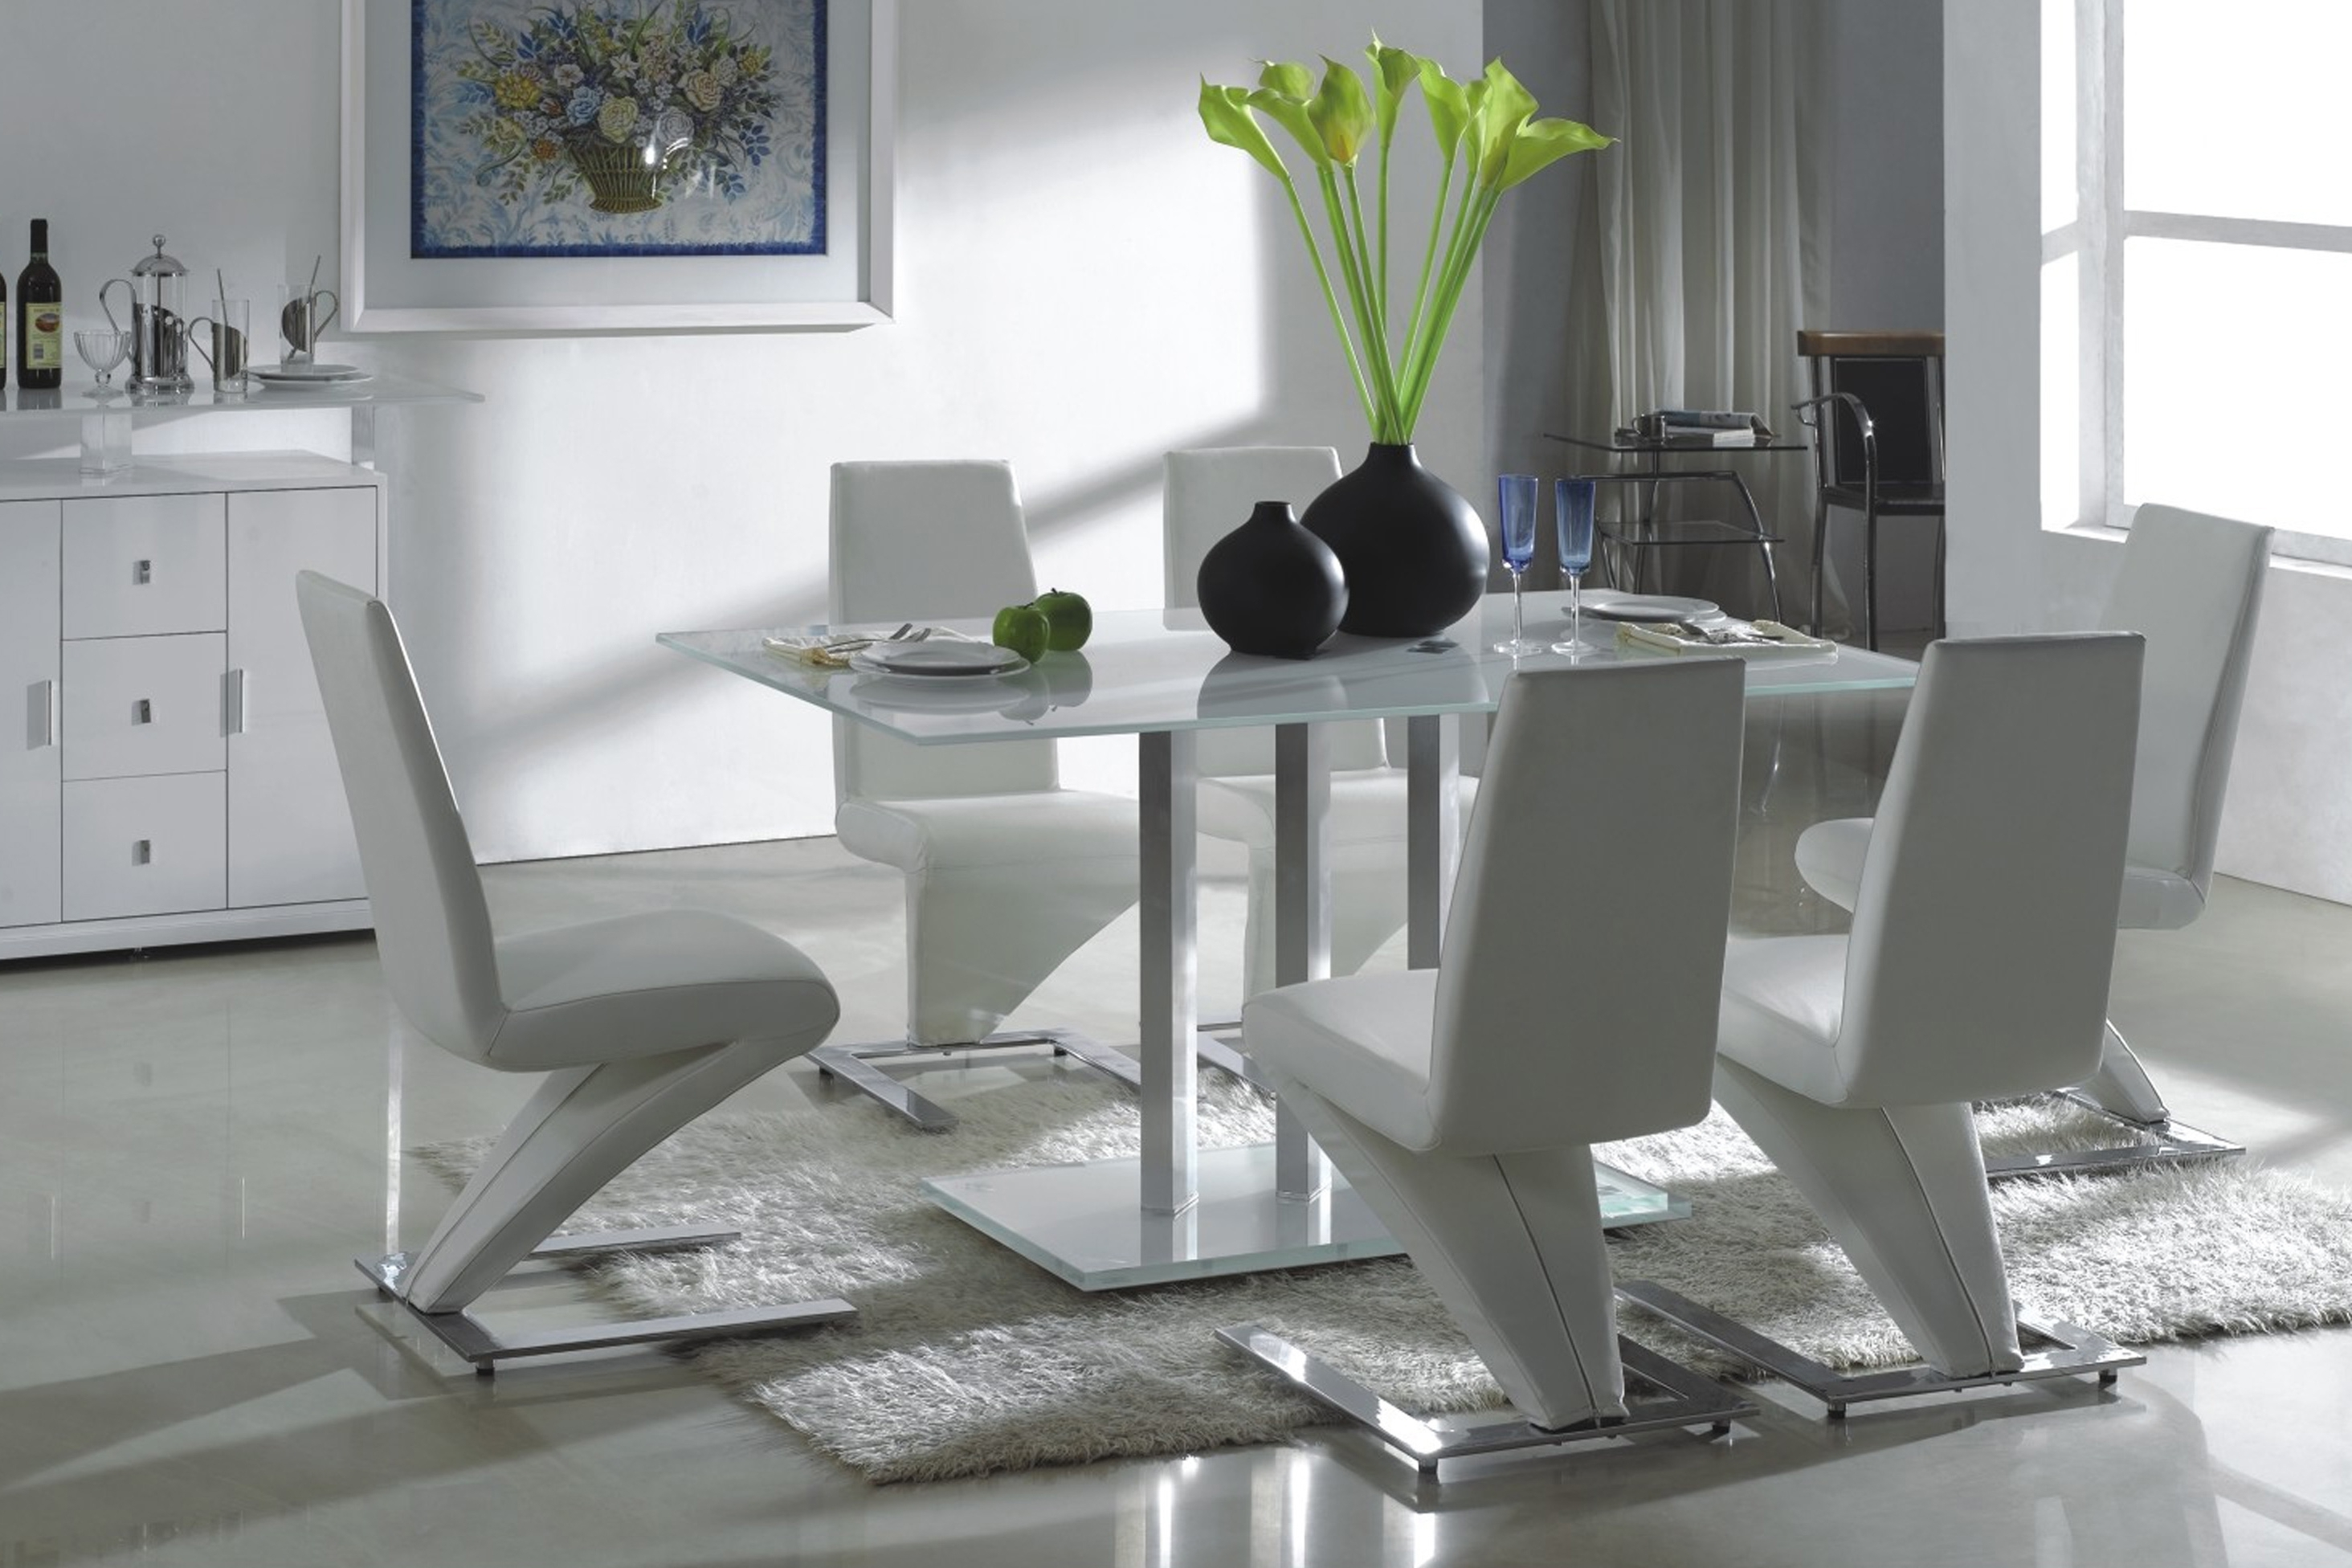 Glass Sophia Round Dining Table Dining Set Tempered Glass Table With For Popular Ikea Round Glass Top Dining Tables (View 5 of 25)